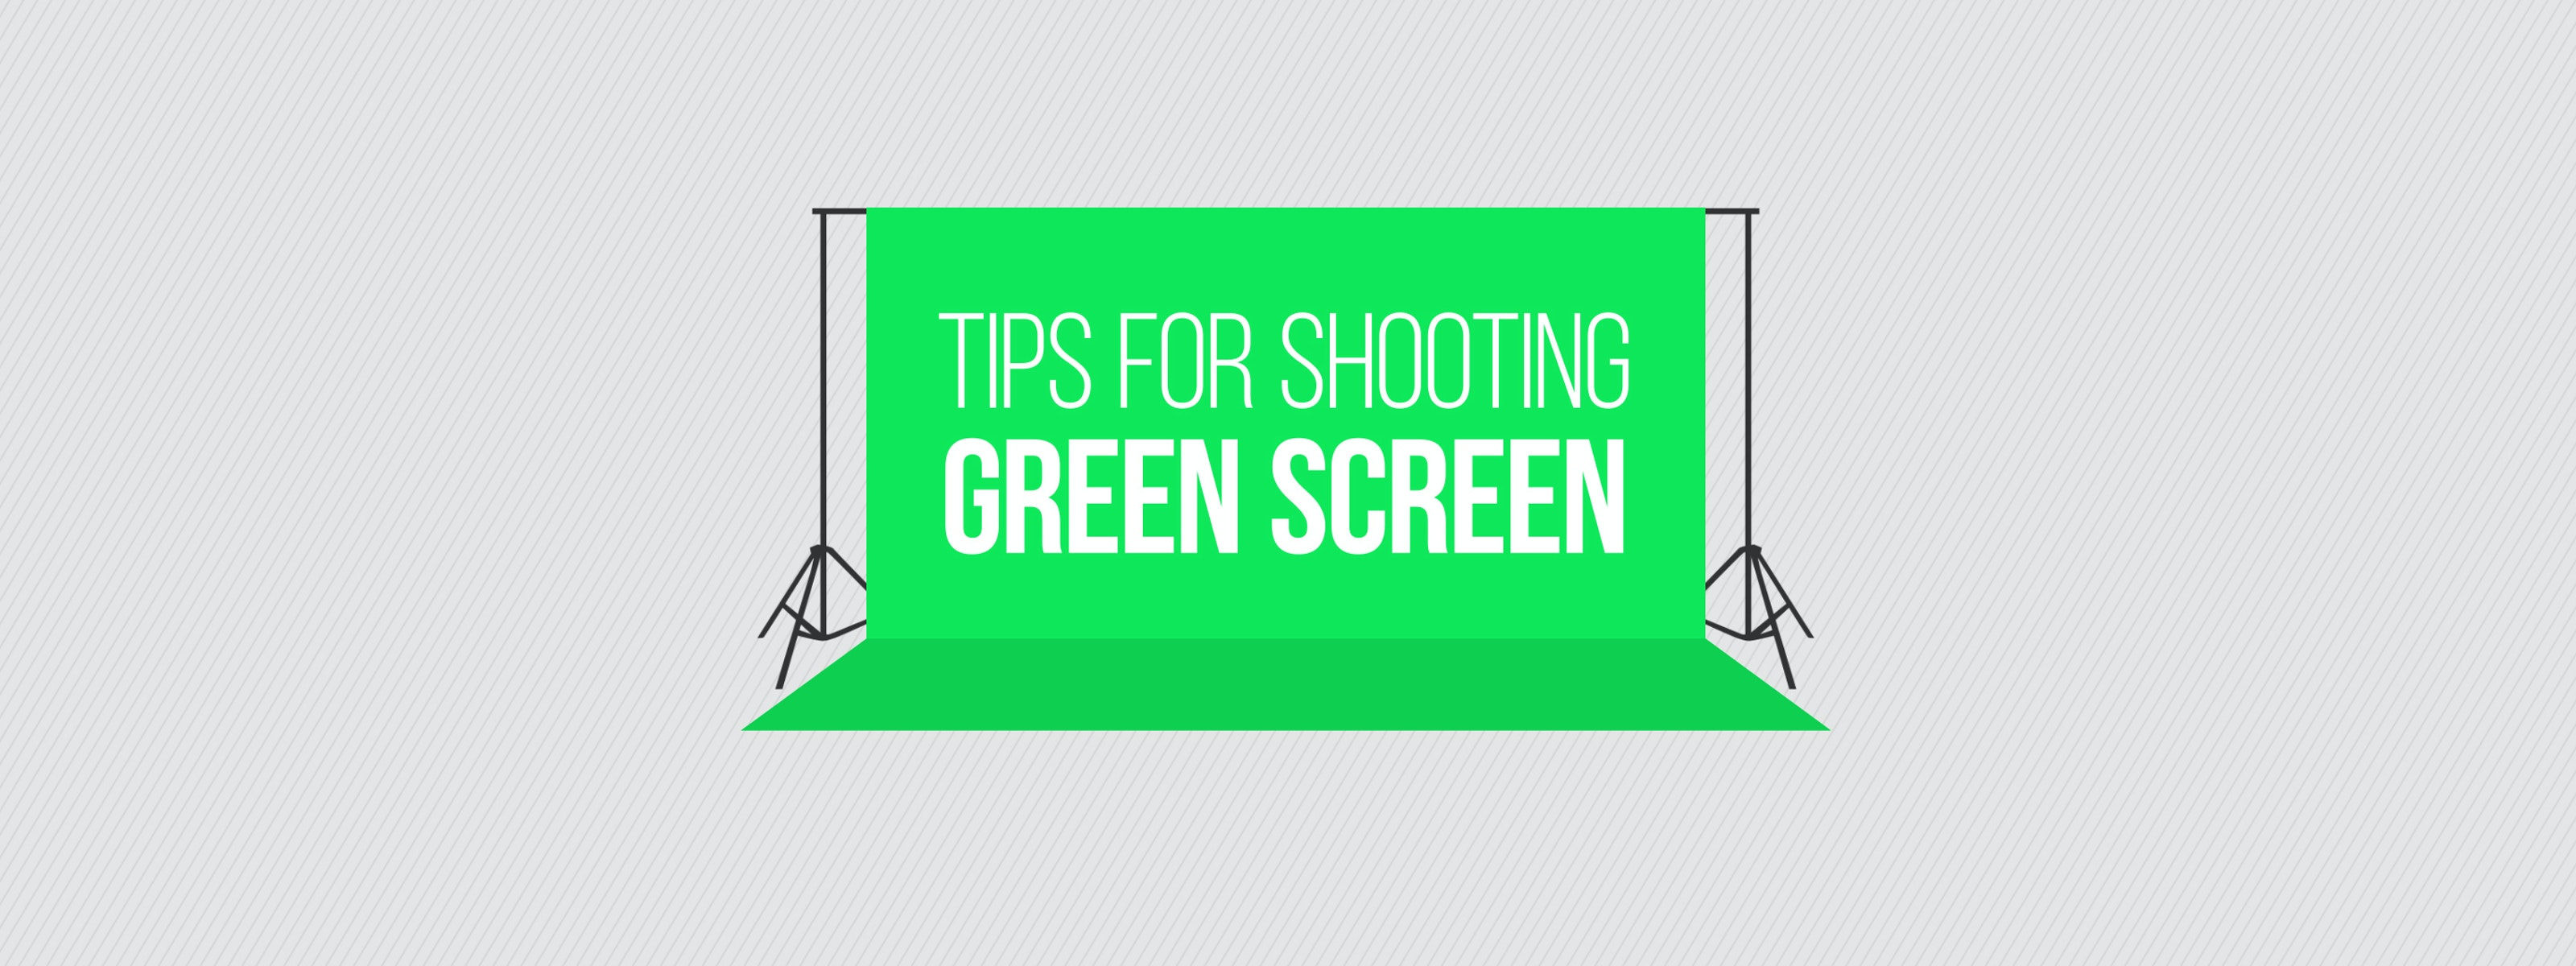 tips for shooting with green screen motion array